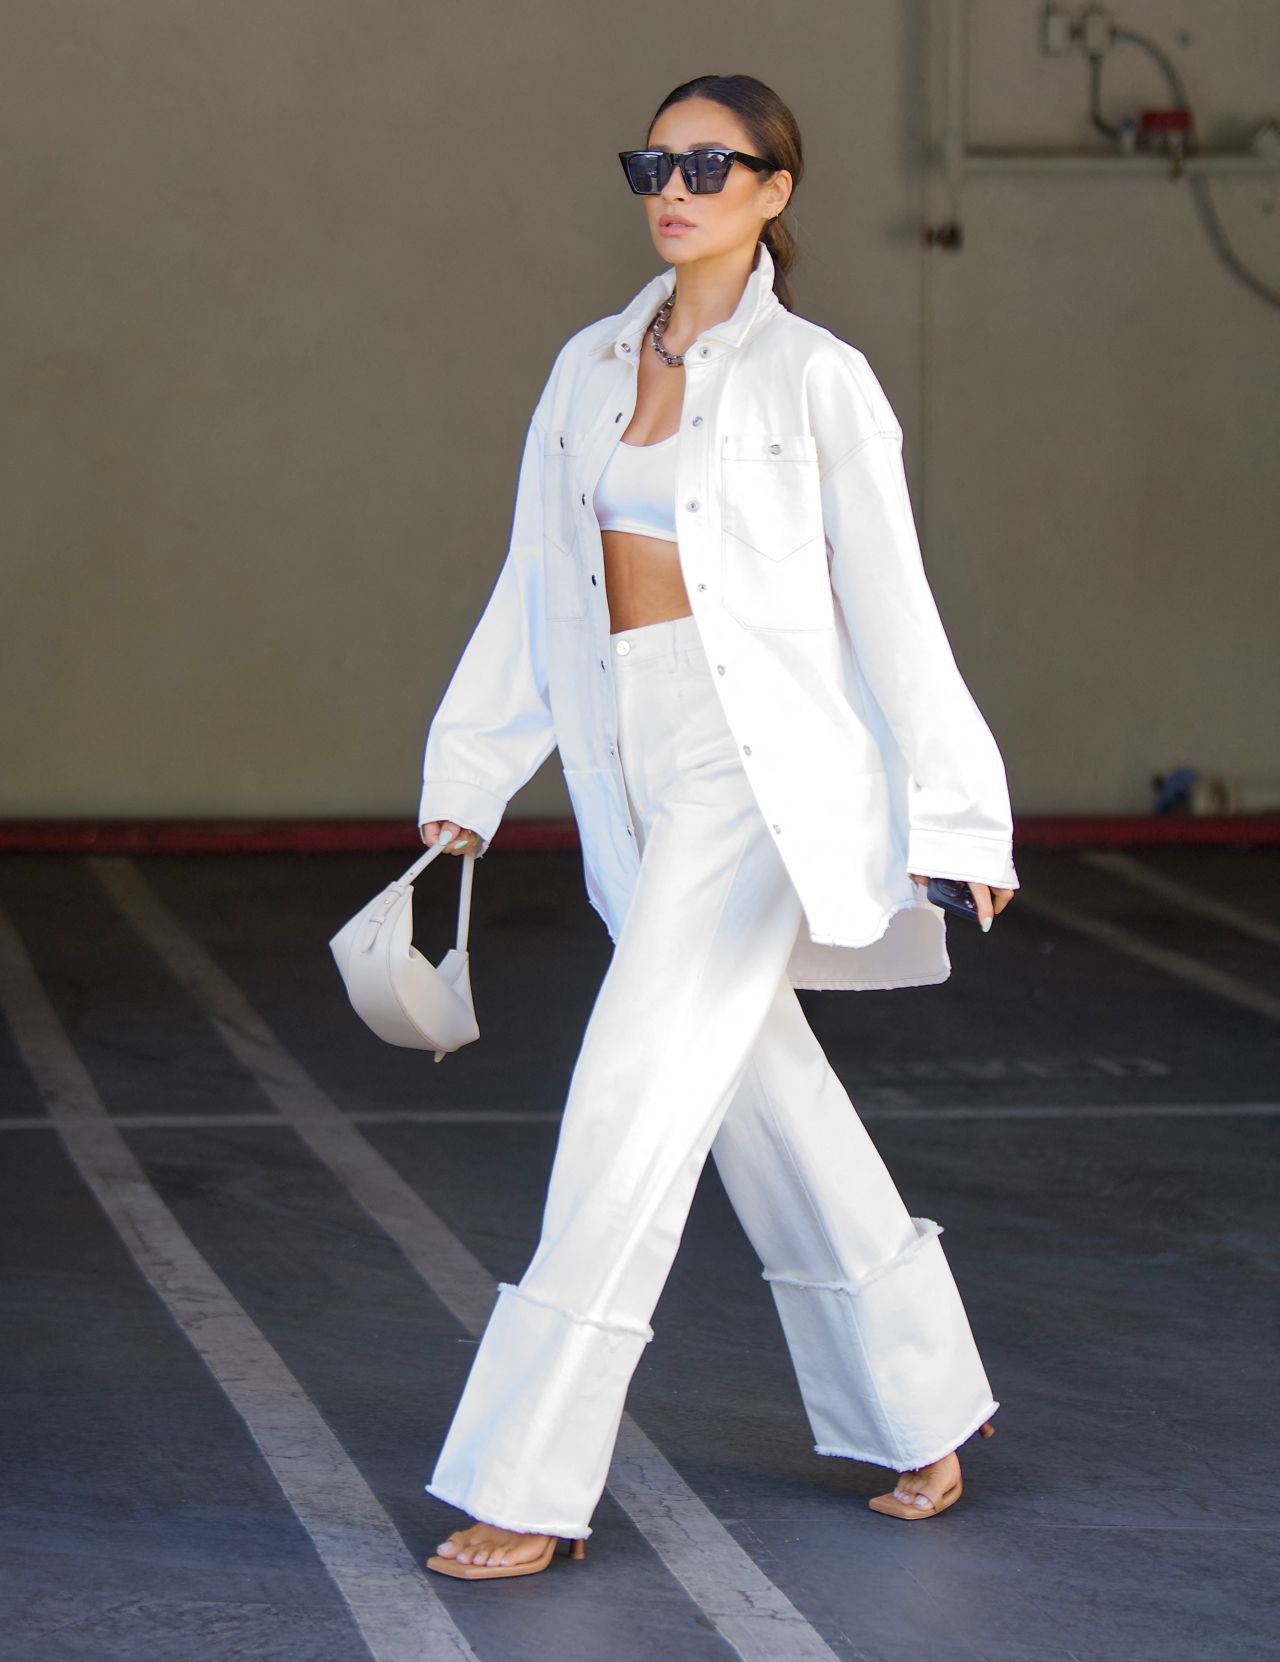 fashion-sizzler-shay-mitchell-wearing-frame-sailor-suit-in-los-angeles-05-17-2021